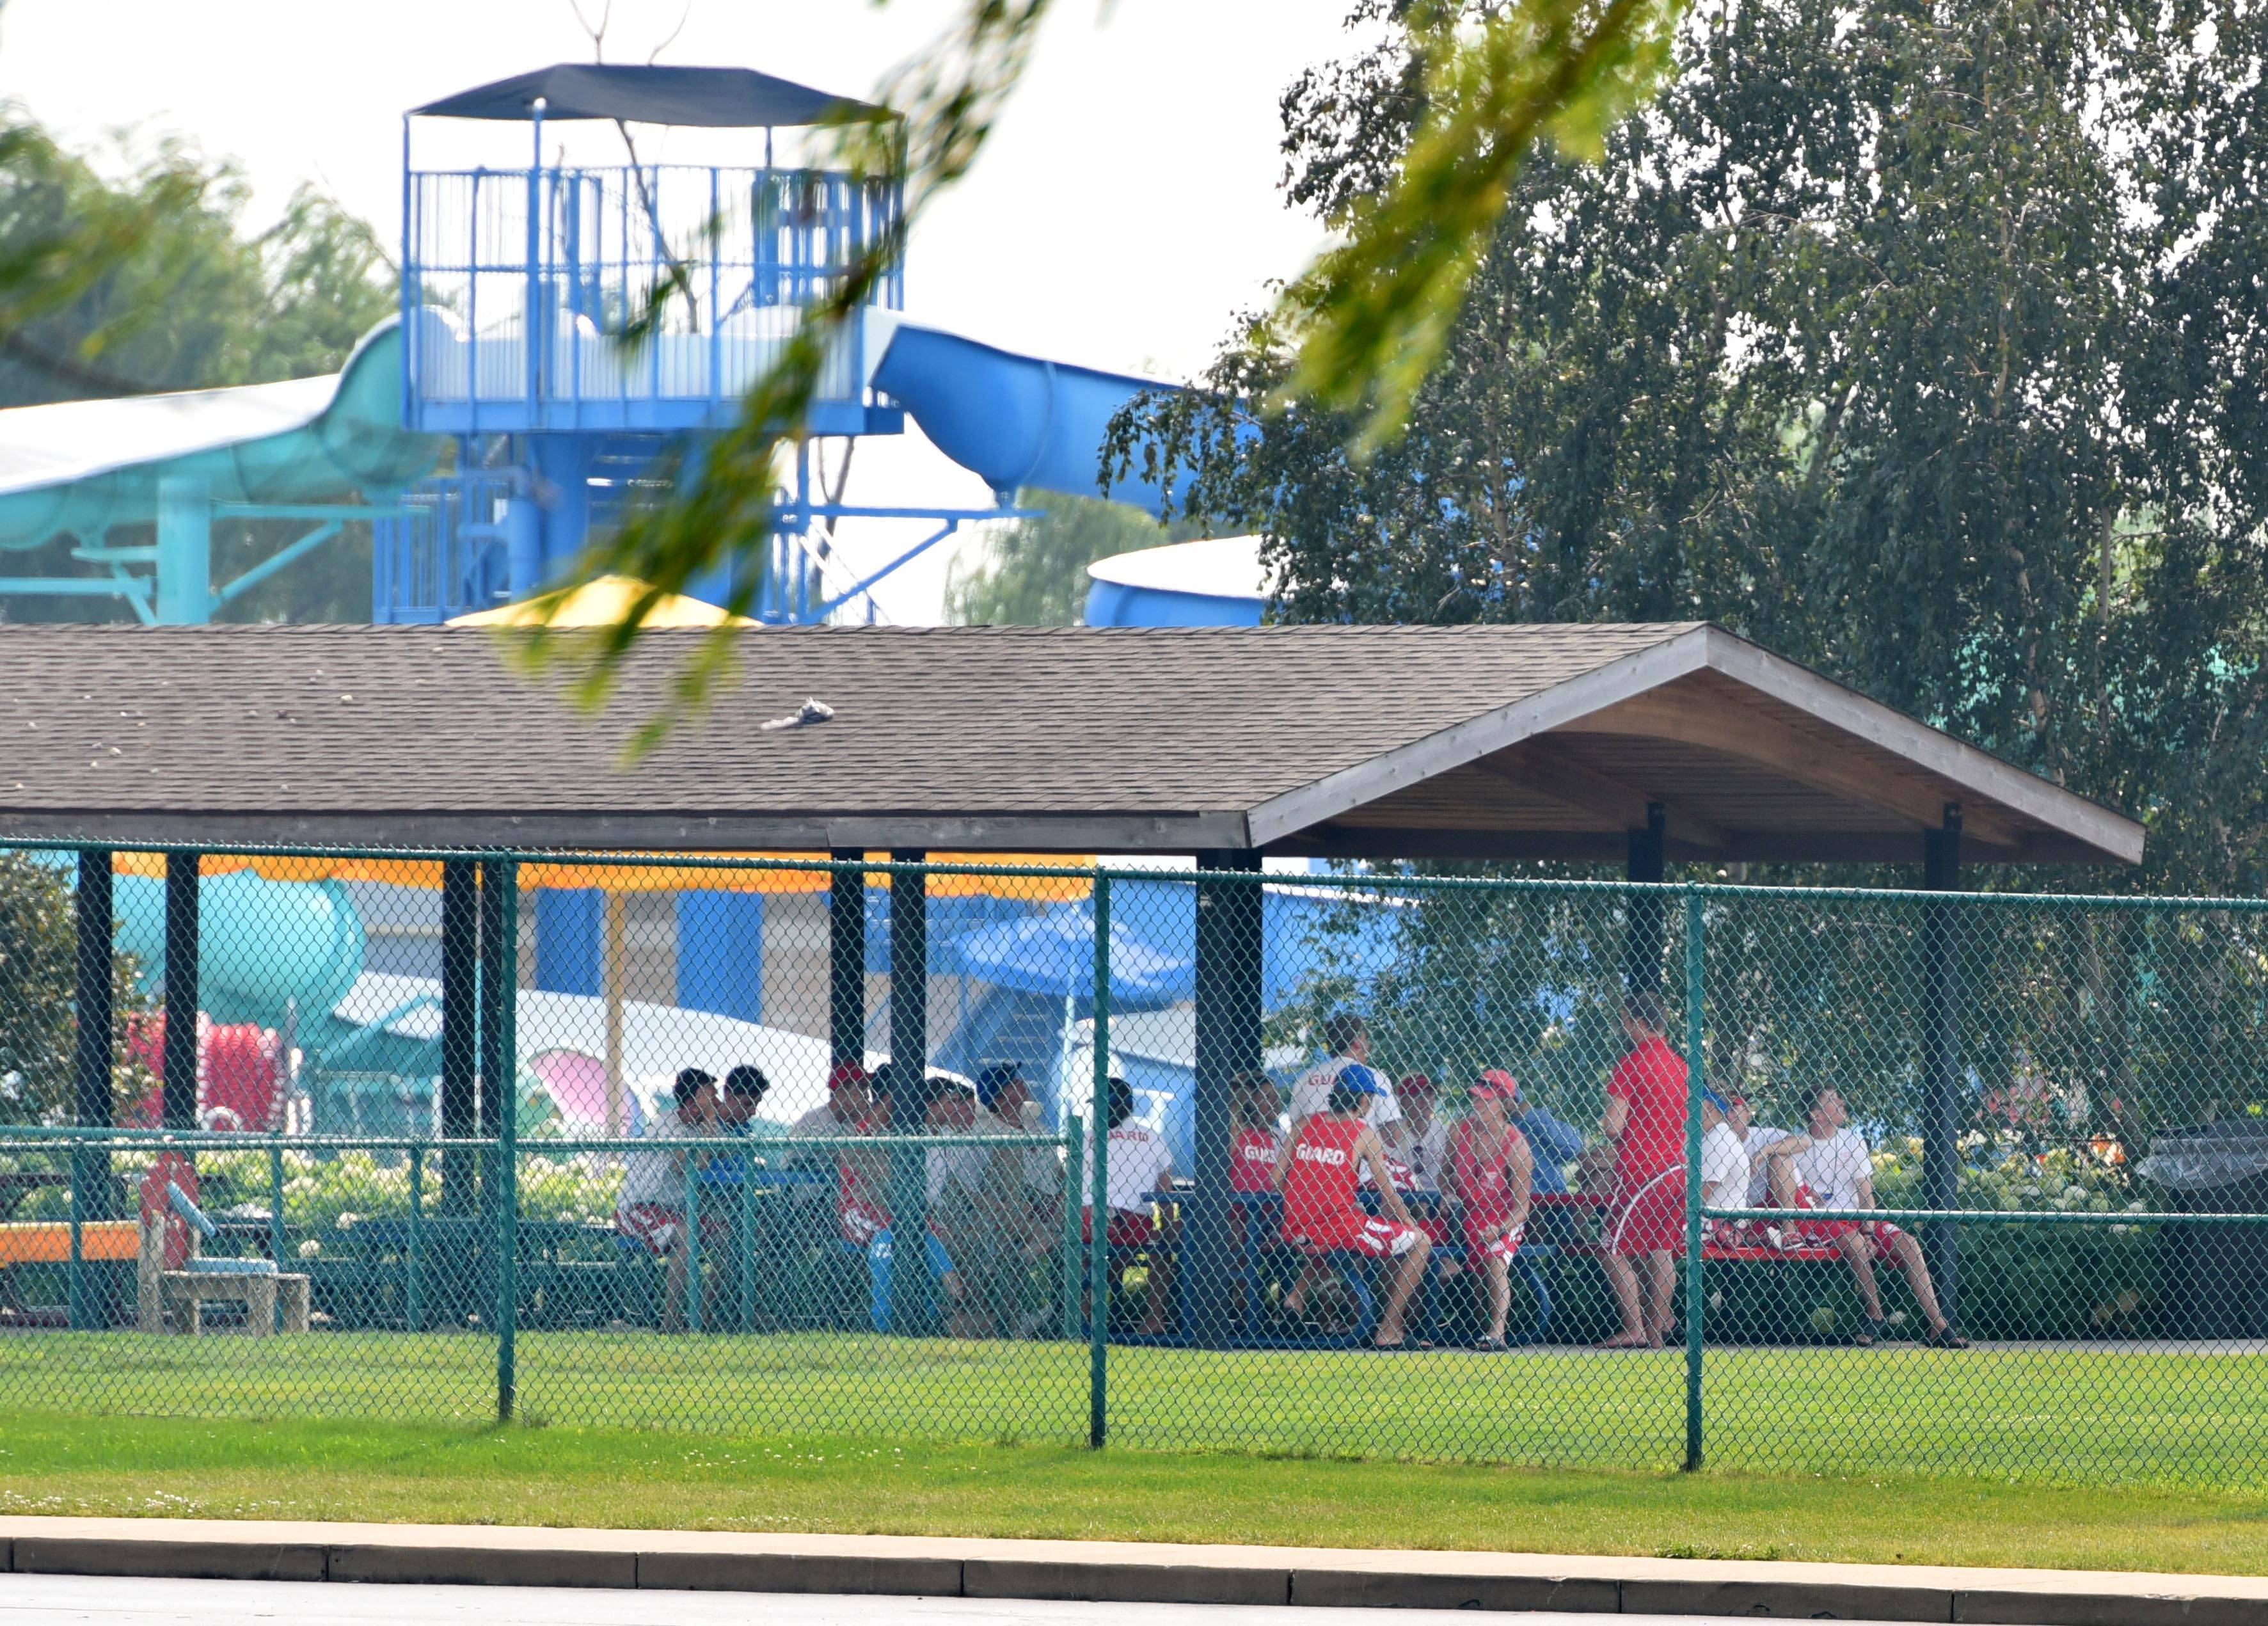 Staff members gather at picnic tables Monday afternoon at Stingray Bay Aquatic Center in Huntley where two swimmers were pulled from the water by lifeguards for being in distress.